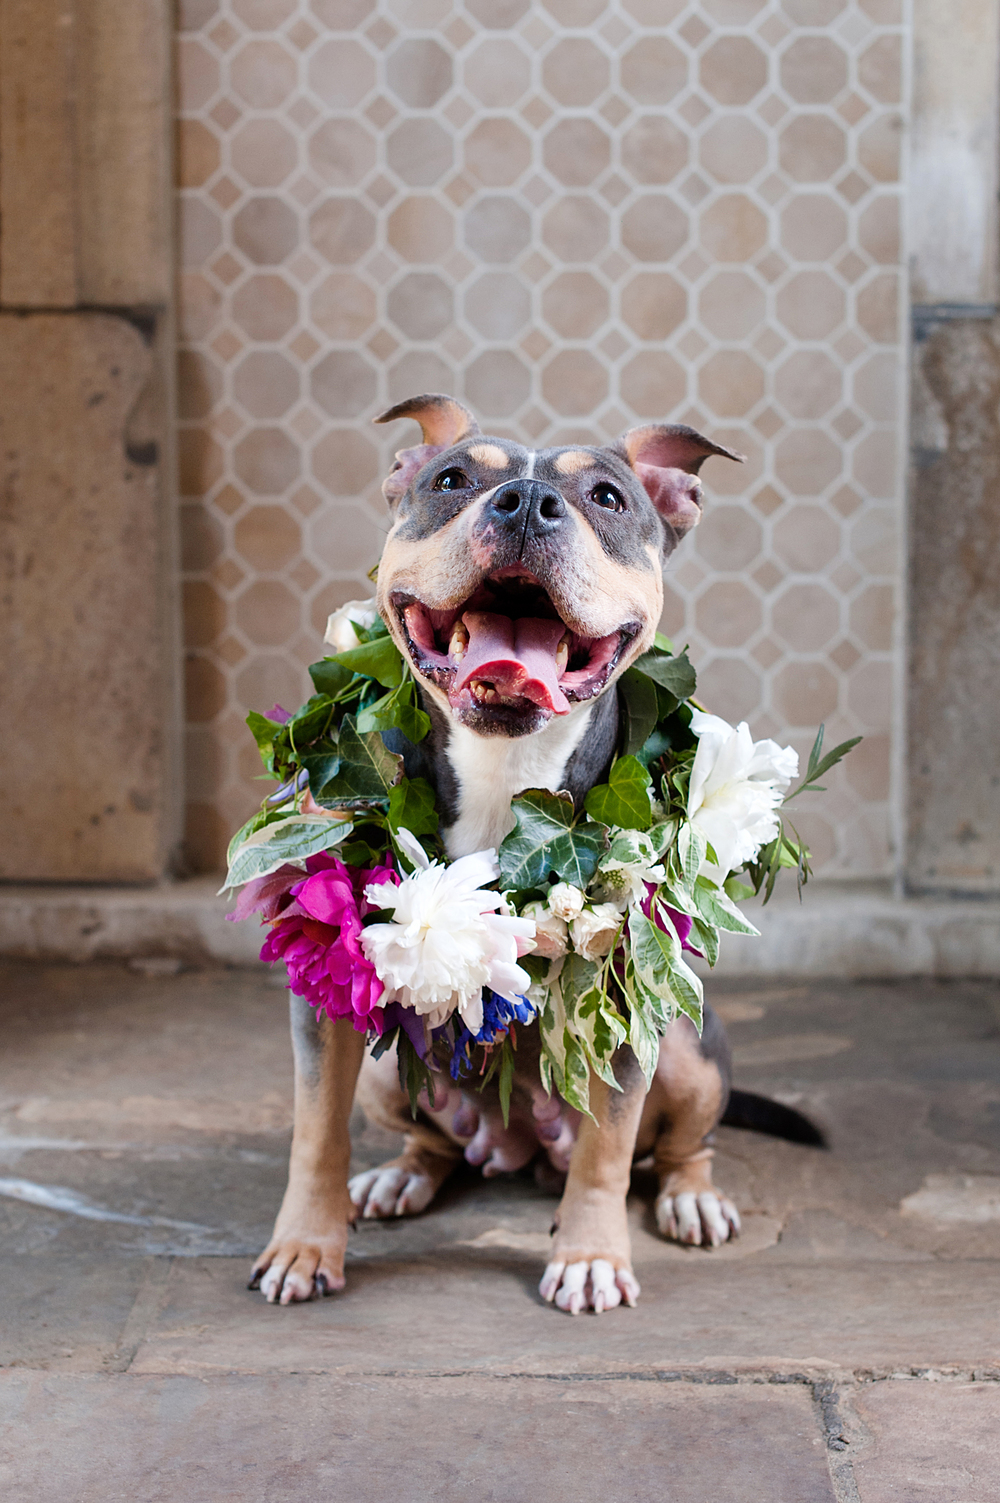 Adoptable dog in flower crown